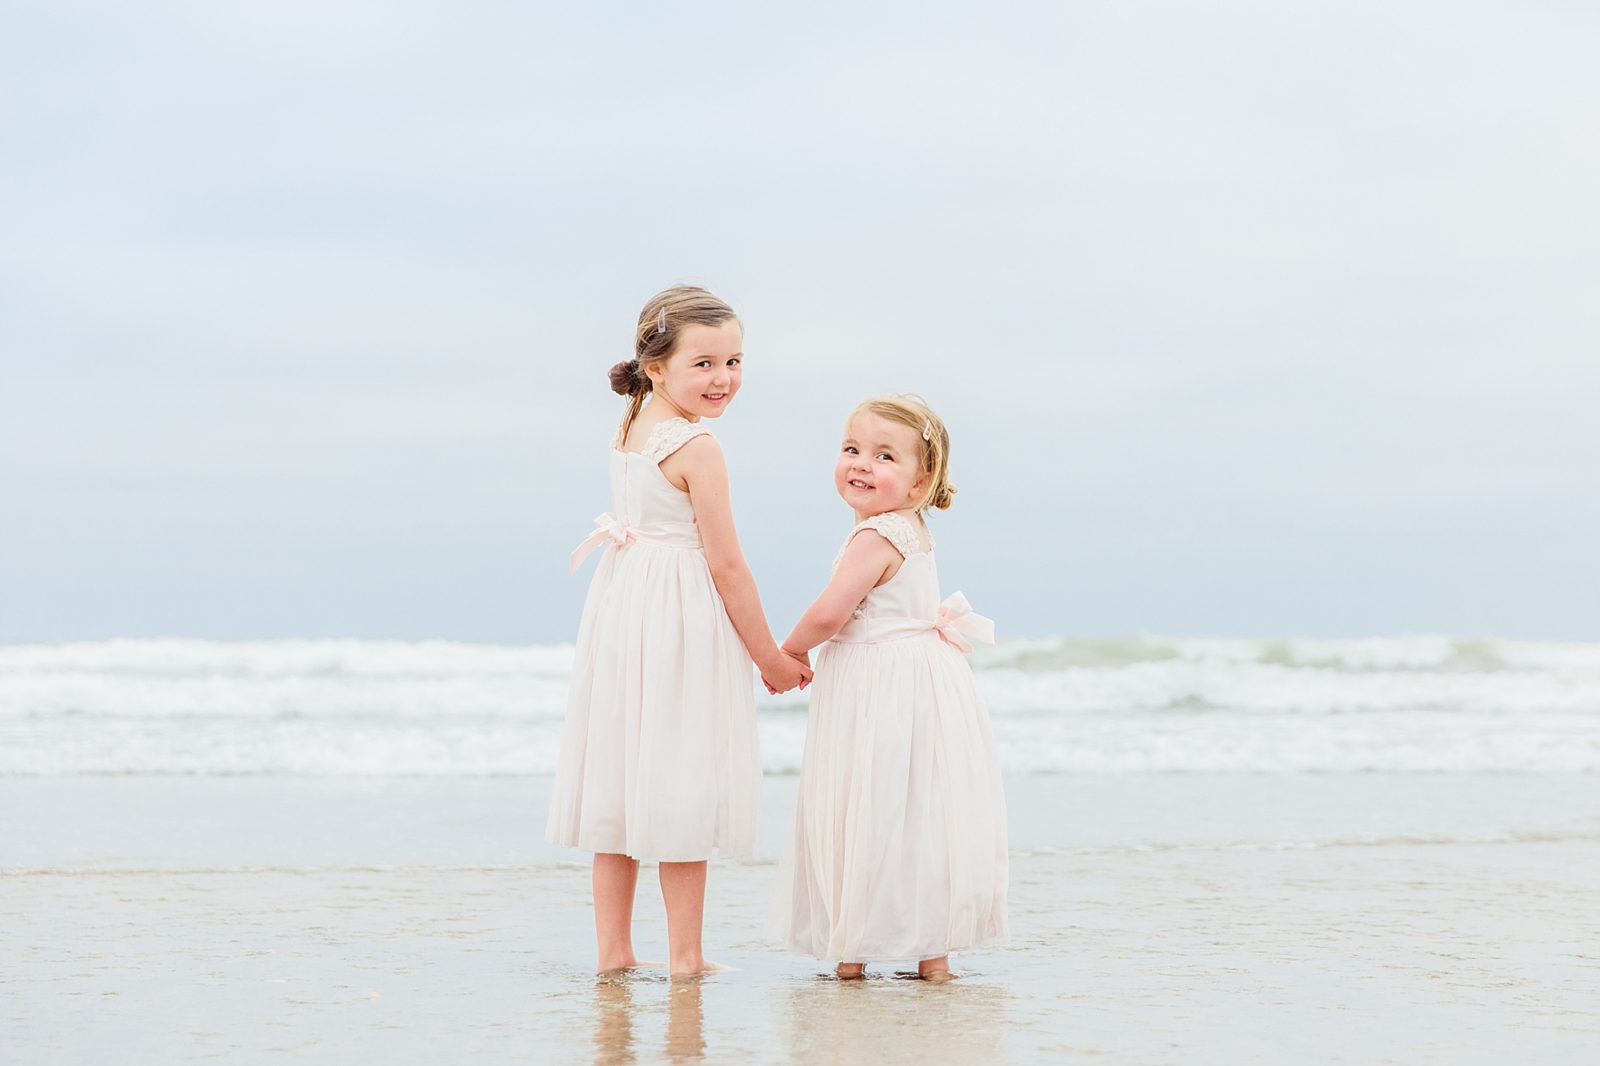 Sisters | Family Photography San Diego